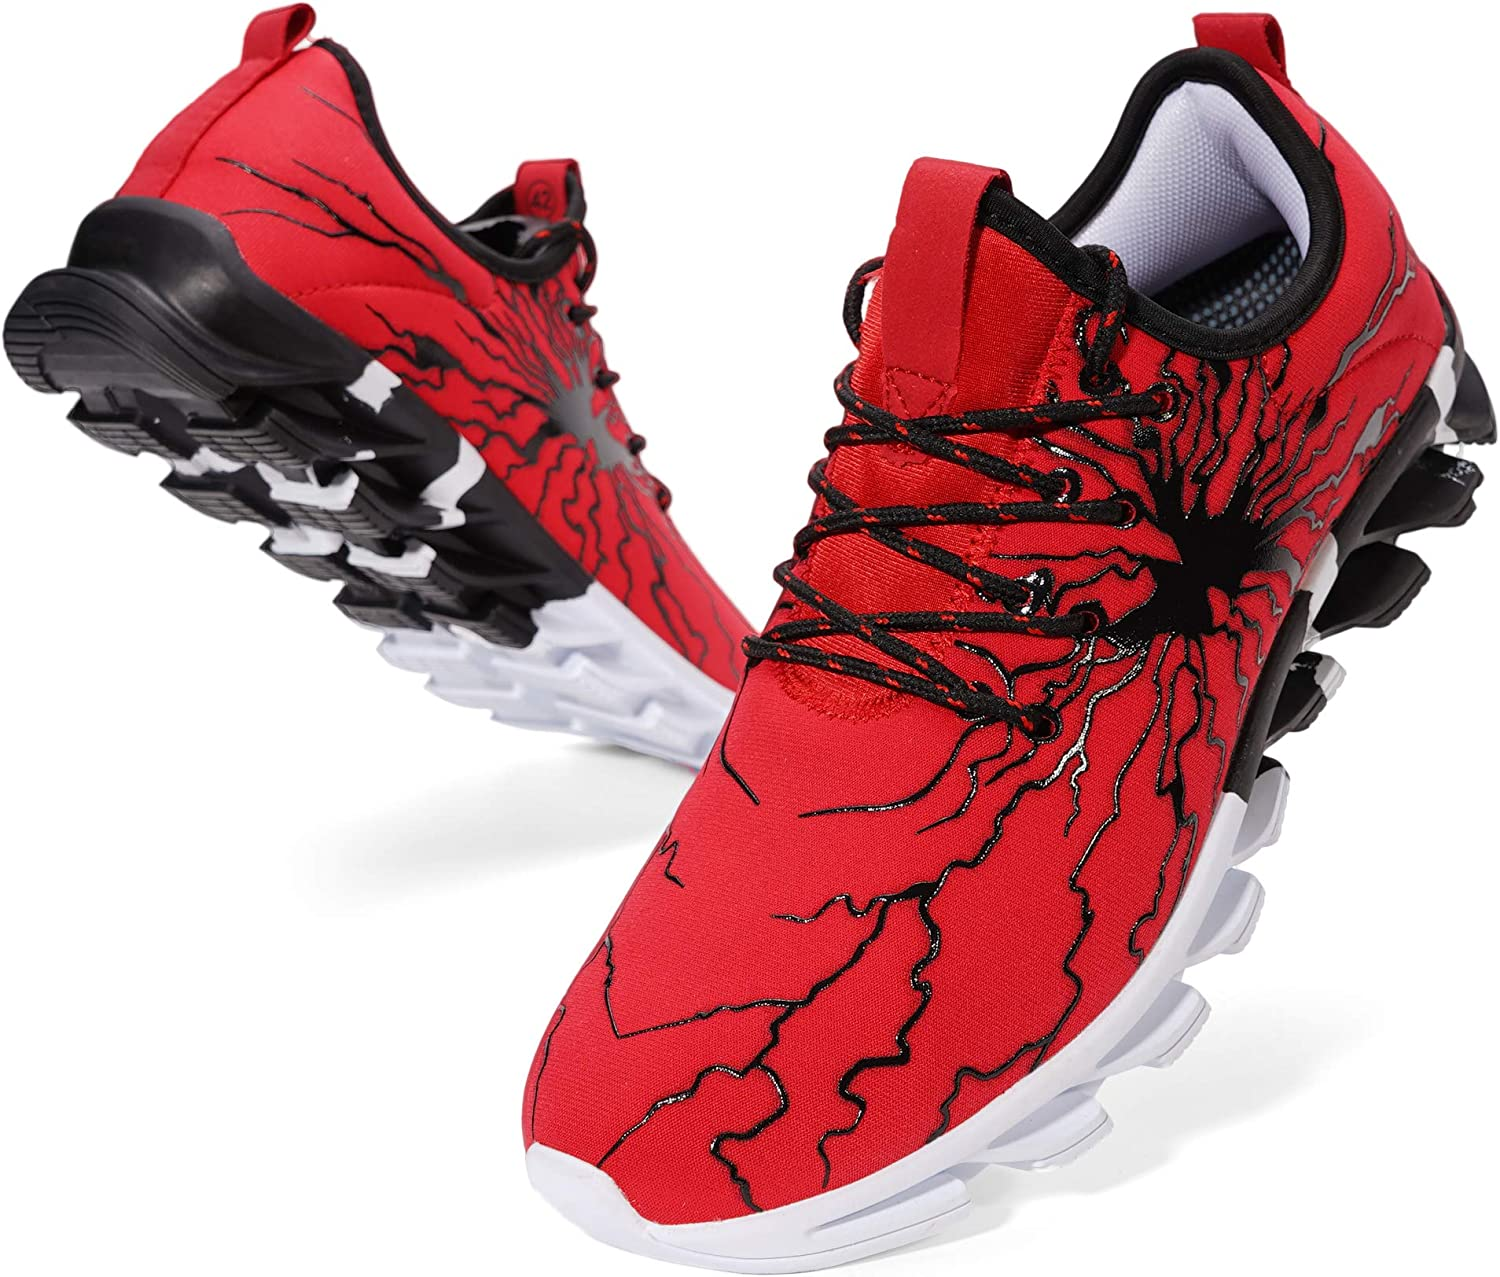 BRONAX Super beauty product restock quality Now on sale top Men's Stylish Sneakers Graffiti Personality